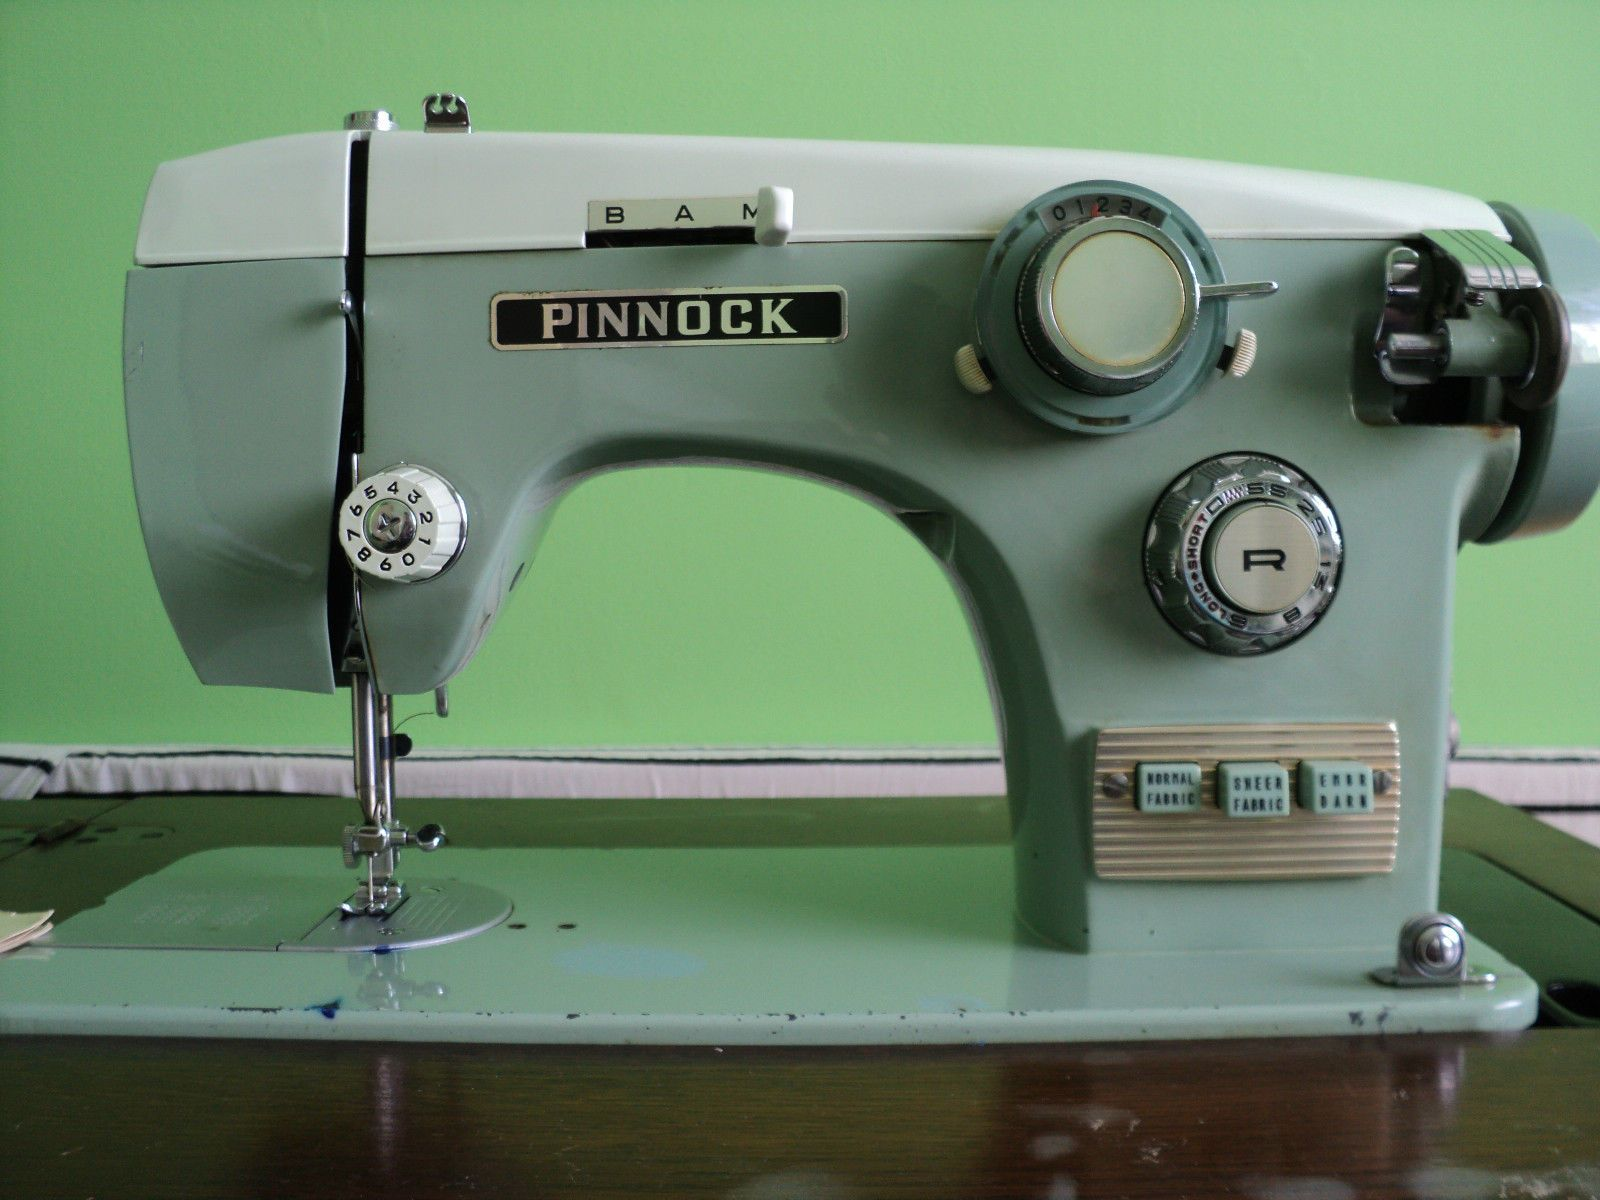 Pinnock Sewing Machine In Cabinet Patchwork And Craft